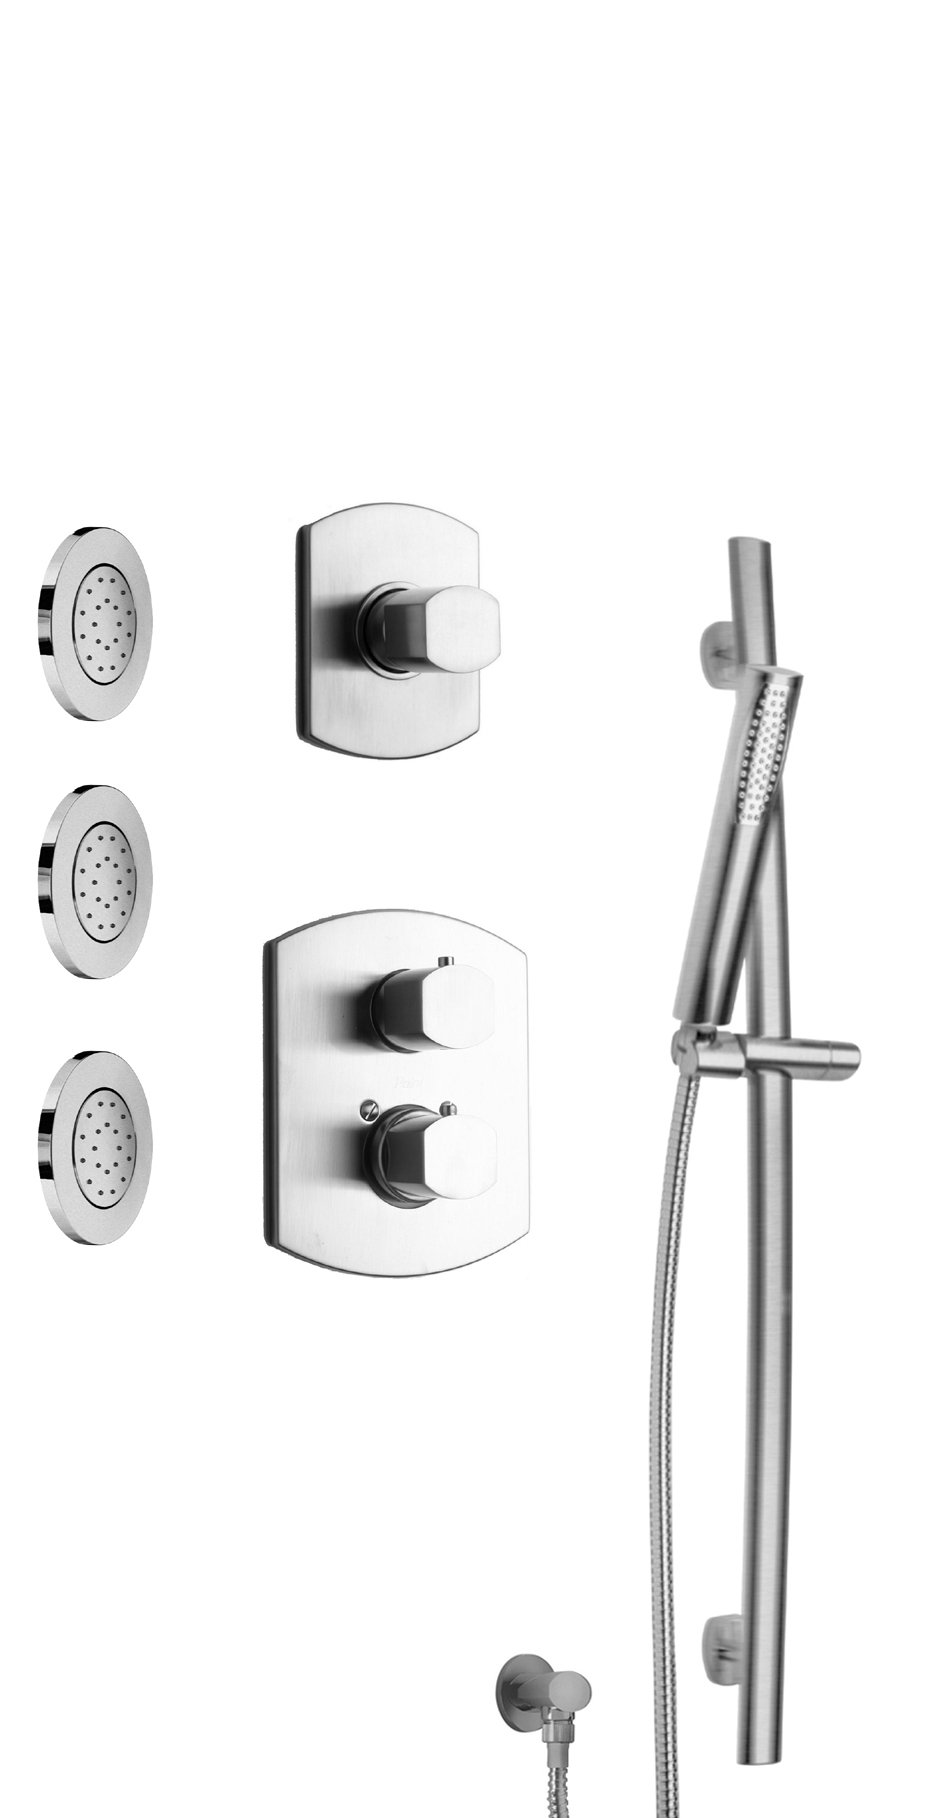 "Thermostatic Shower With 3/4"" Ceramic Disc Volume Control, 3-Way Diverter, Slide Bar and 3 Concealed Body Jets in Chrome Finish"